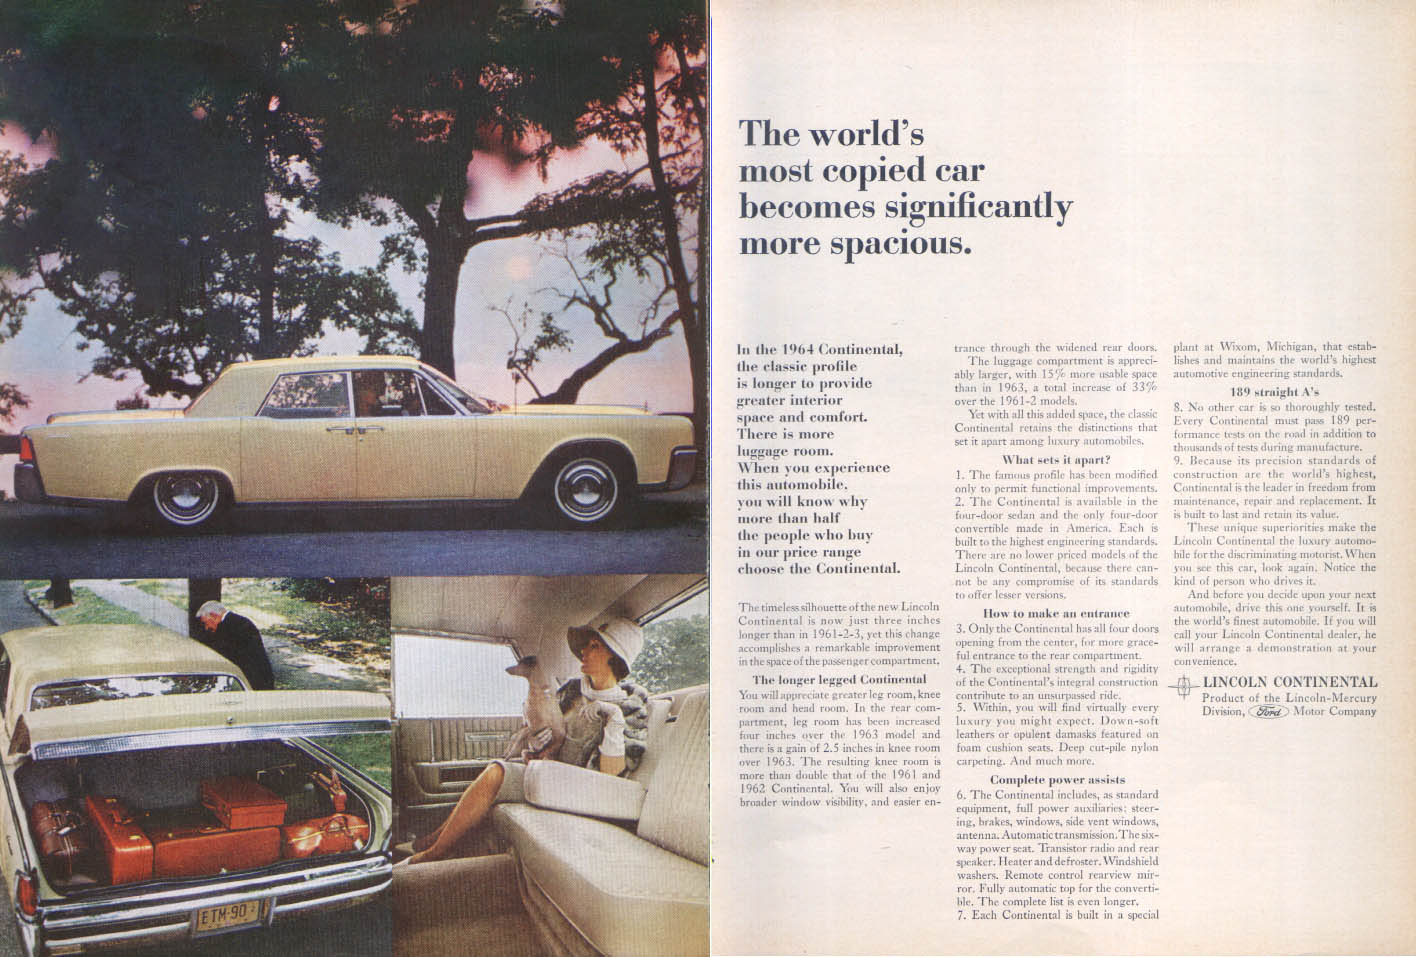 Image for Lincoln Continental lengthened for spaciousness ad 1964